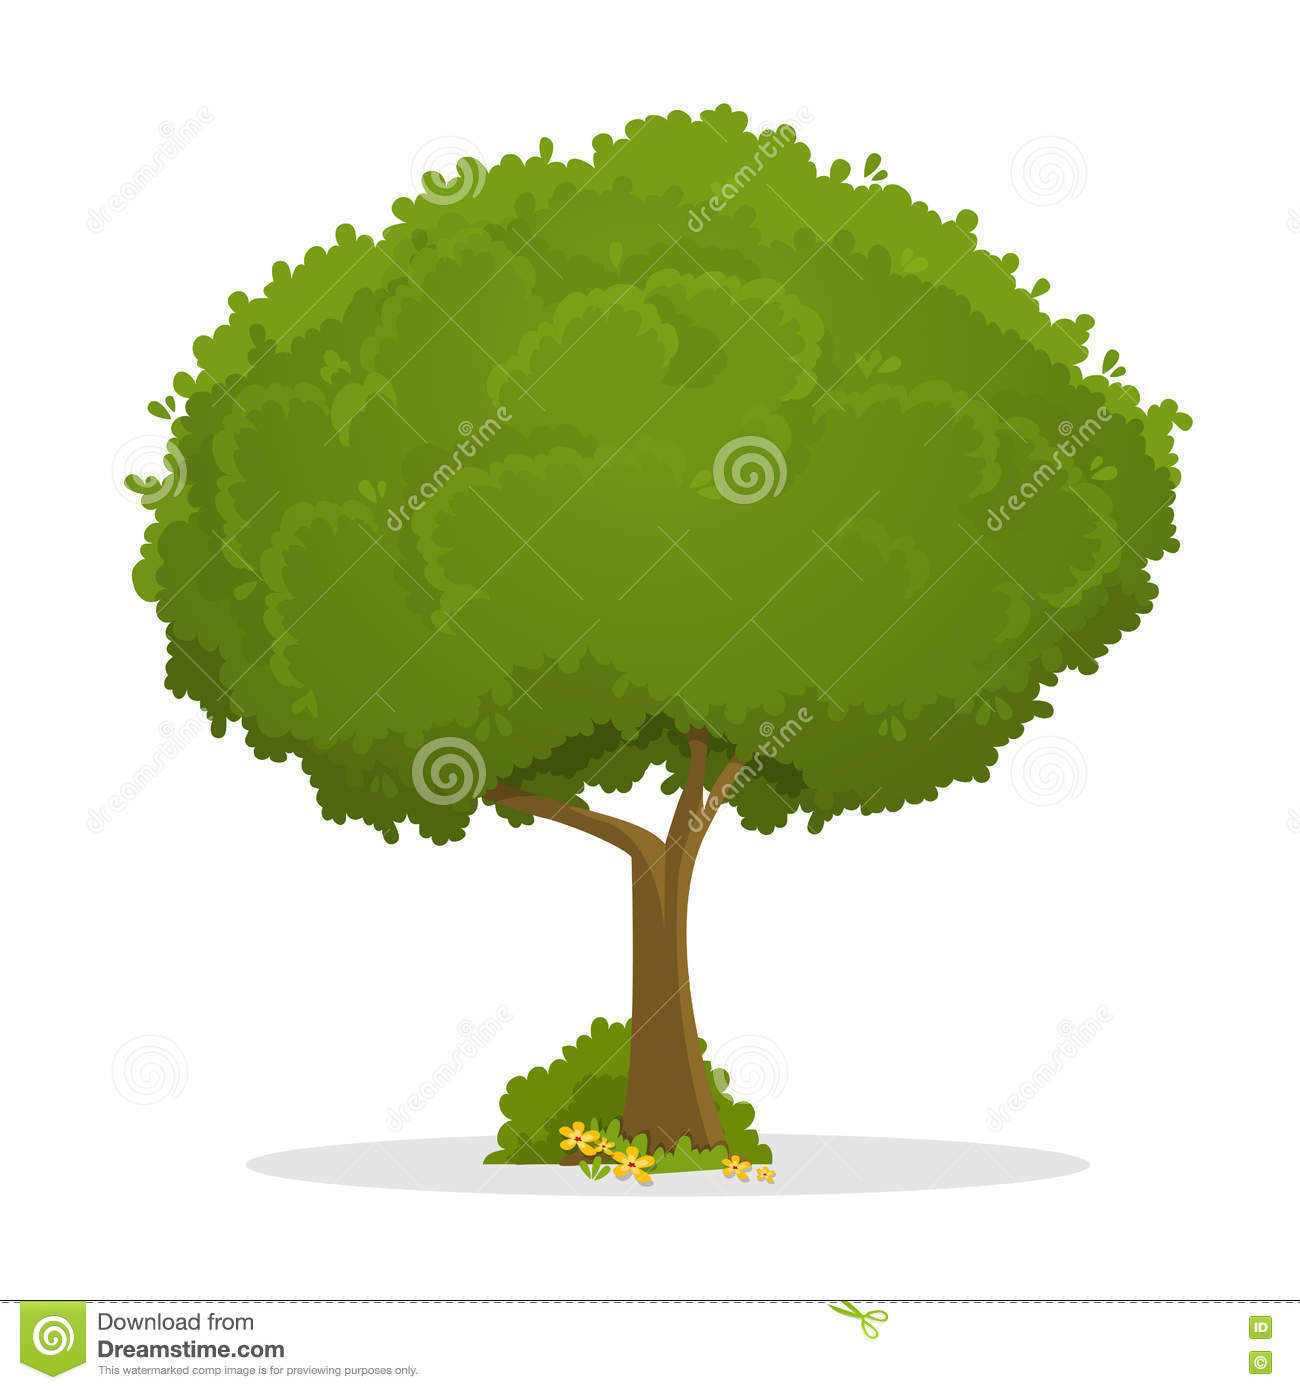 Tree Vector Illustration Stock Vector Illustration Of Card 71362252 It creates a festive mood and gives joy to you and your loved ones. dreamstime com